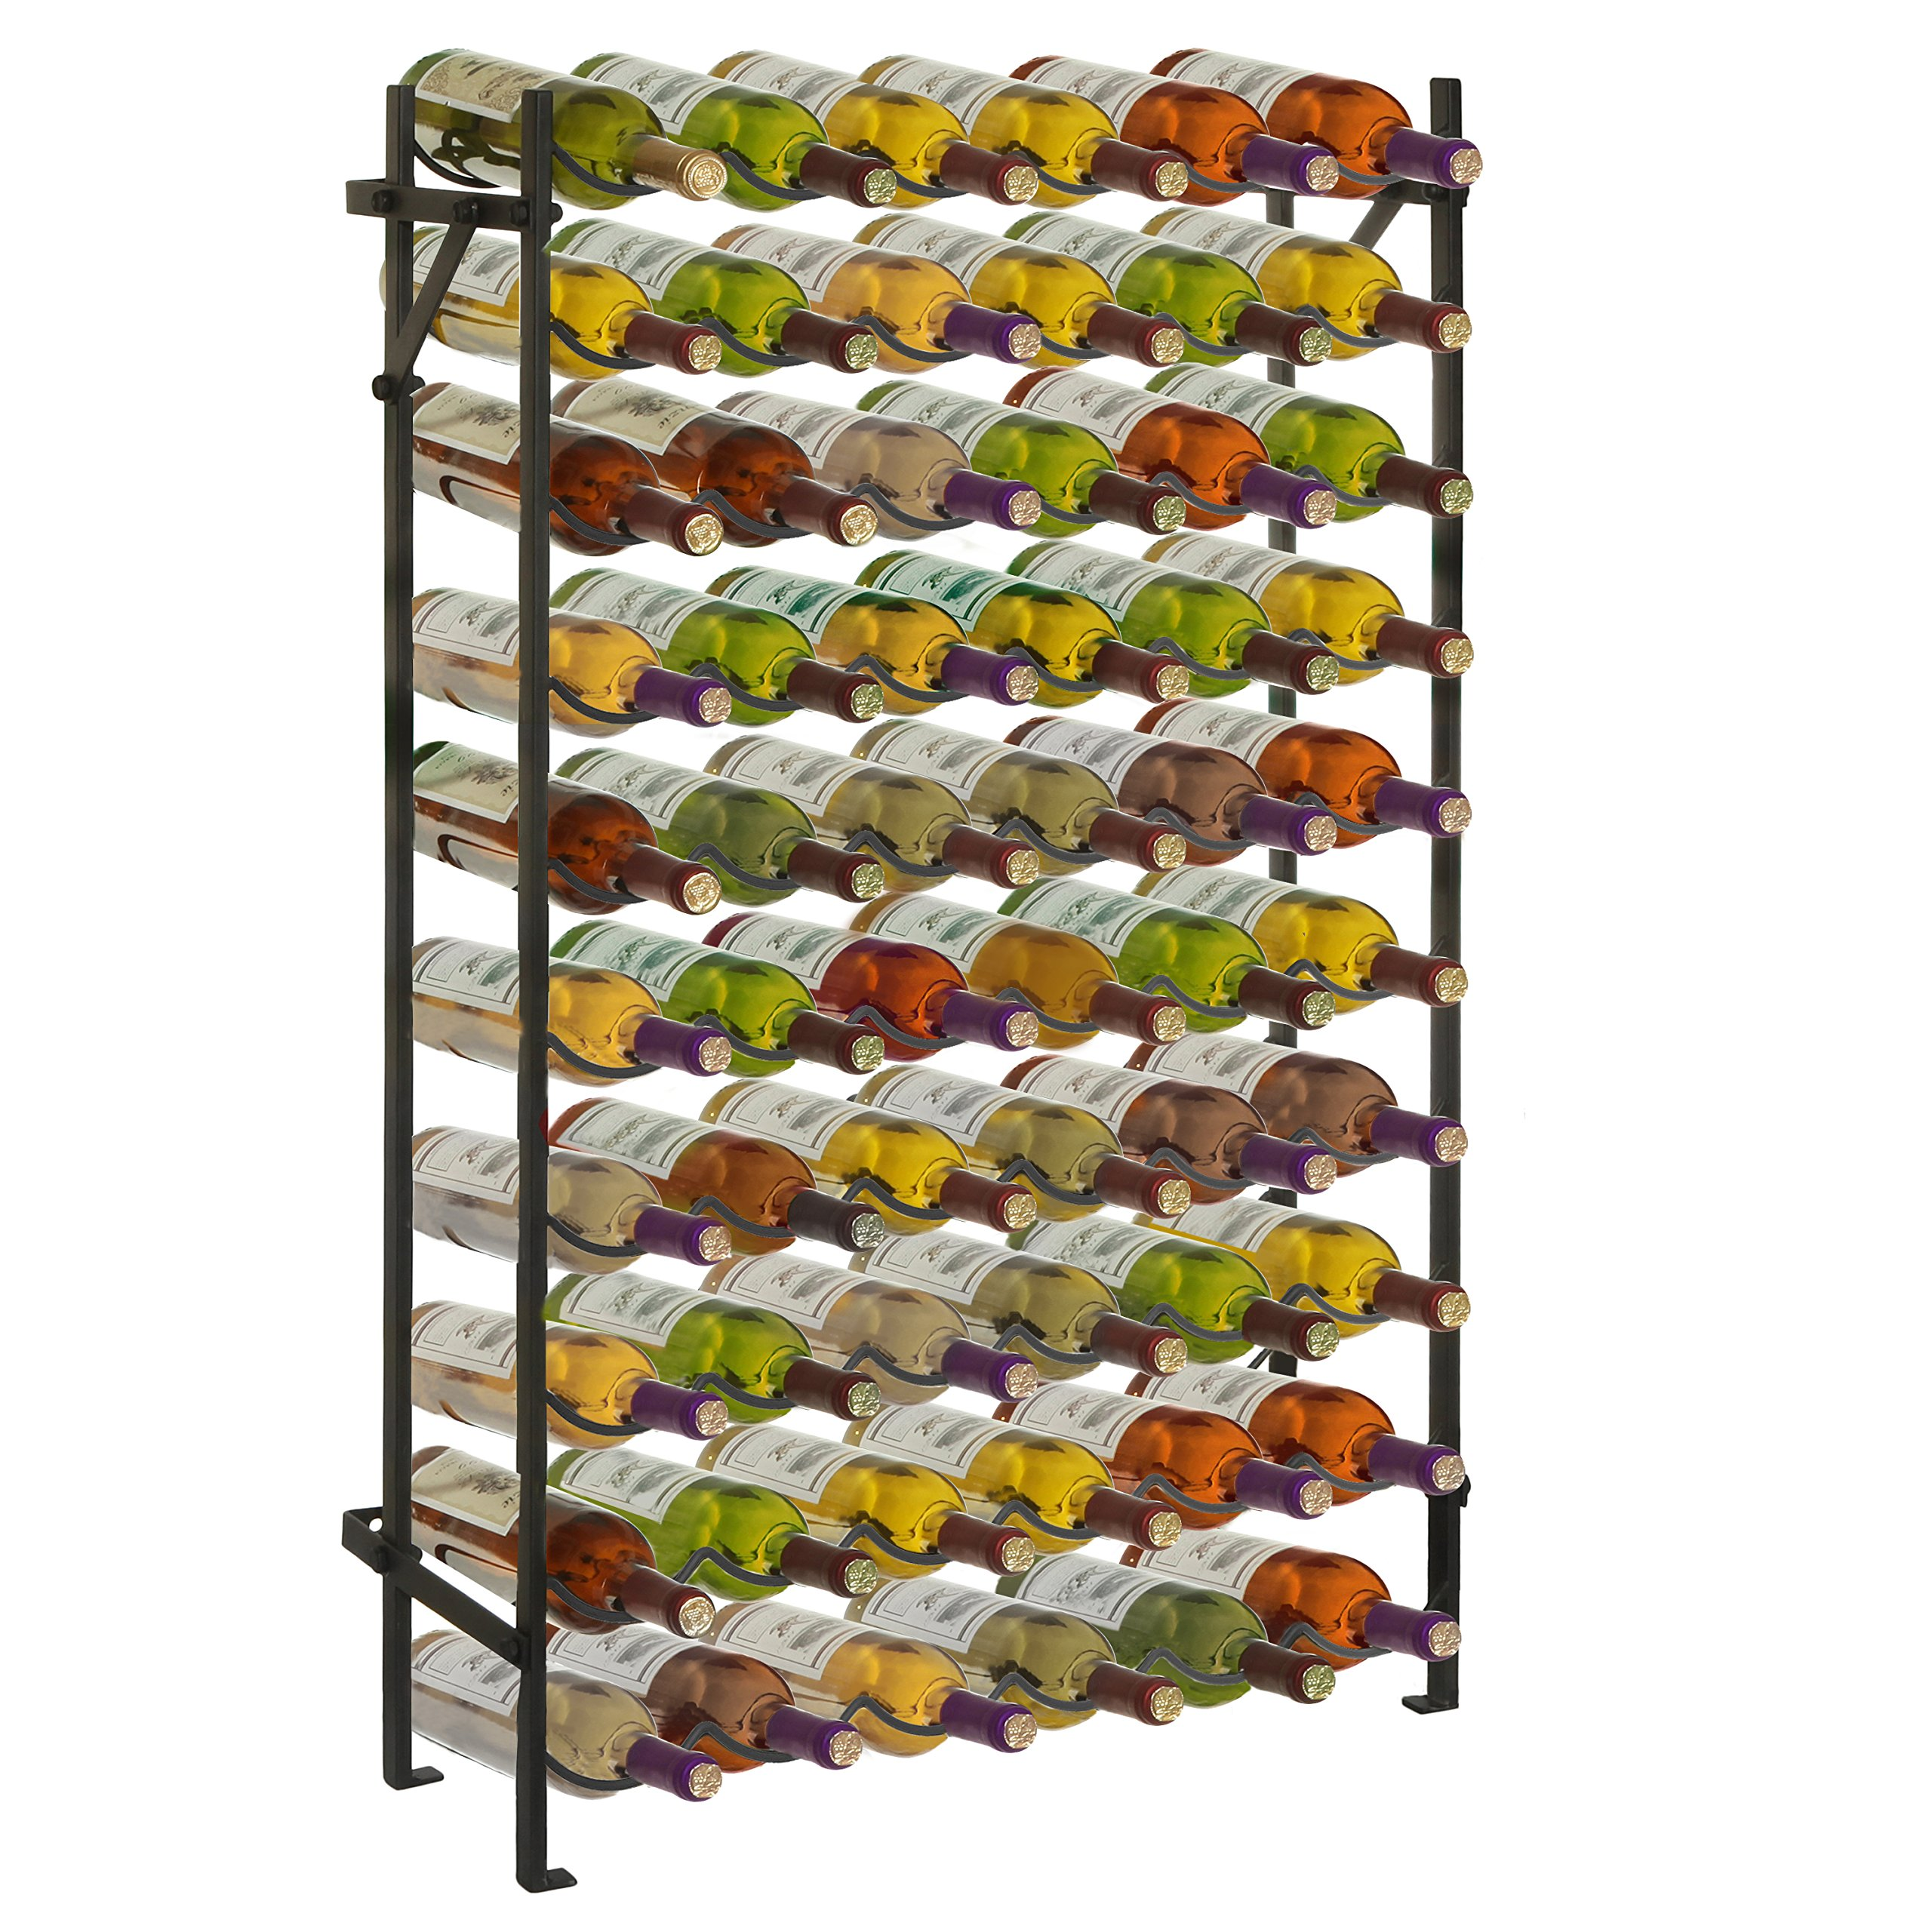 Modern Black Metal 60 Bottle Wine Cellar Organizer Rack/Wall Mounted Wine Collection Display Stand by MyGift (Image #1)